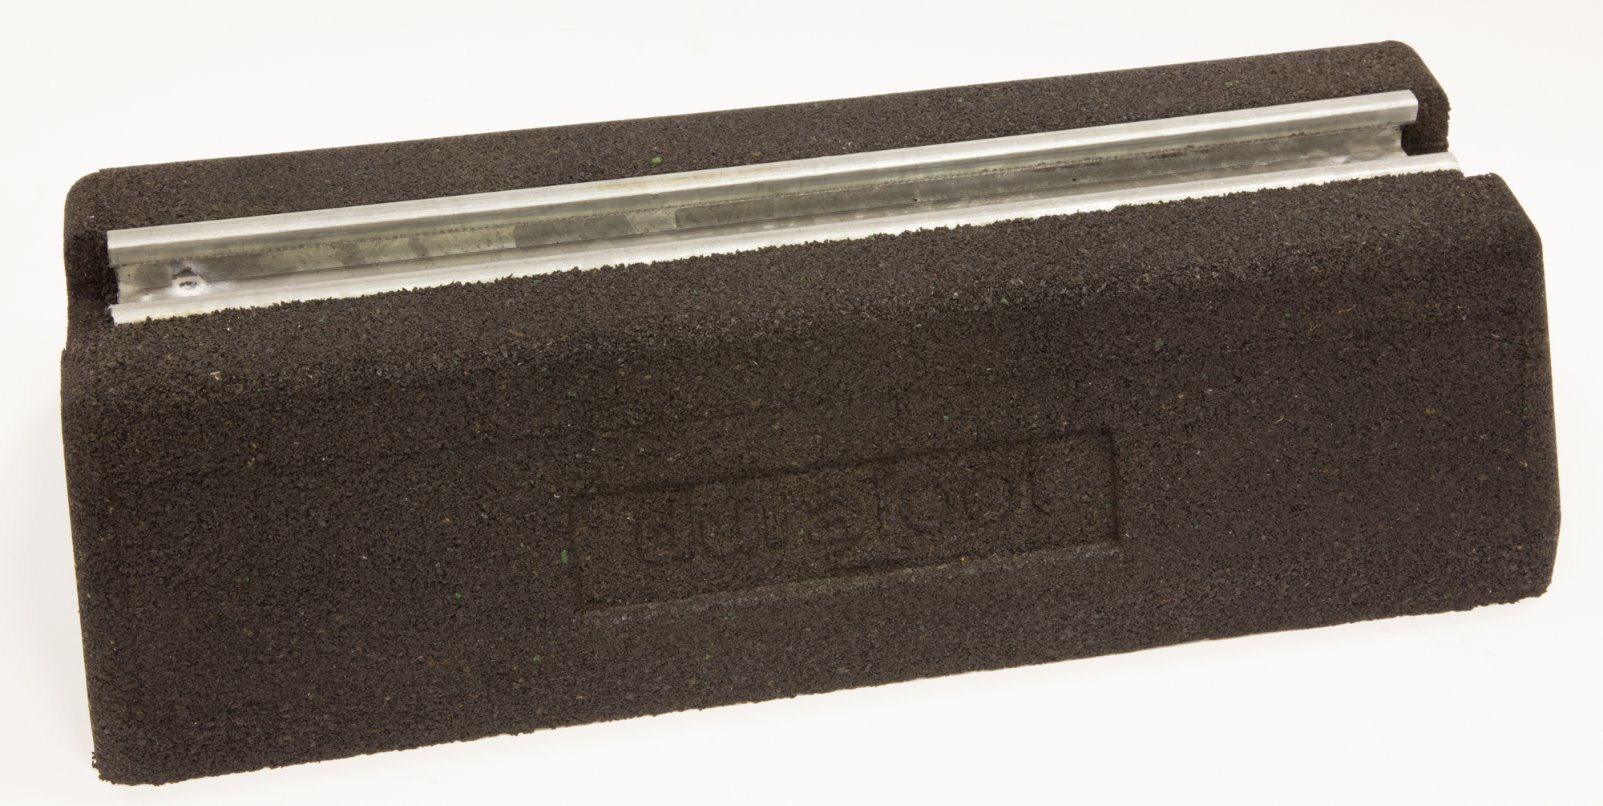 Durafoot Fx400 Rubber Support Foot Rooftop Block Base for Cable Tray, Busbar, Ducting & Pipework pictures & photos